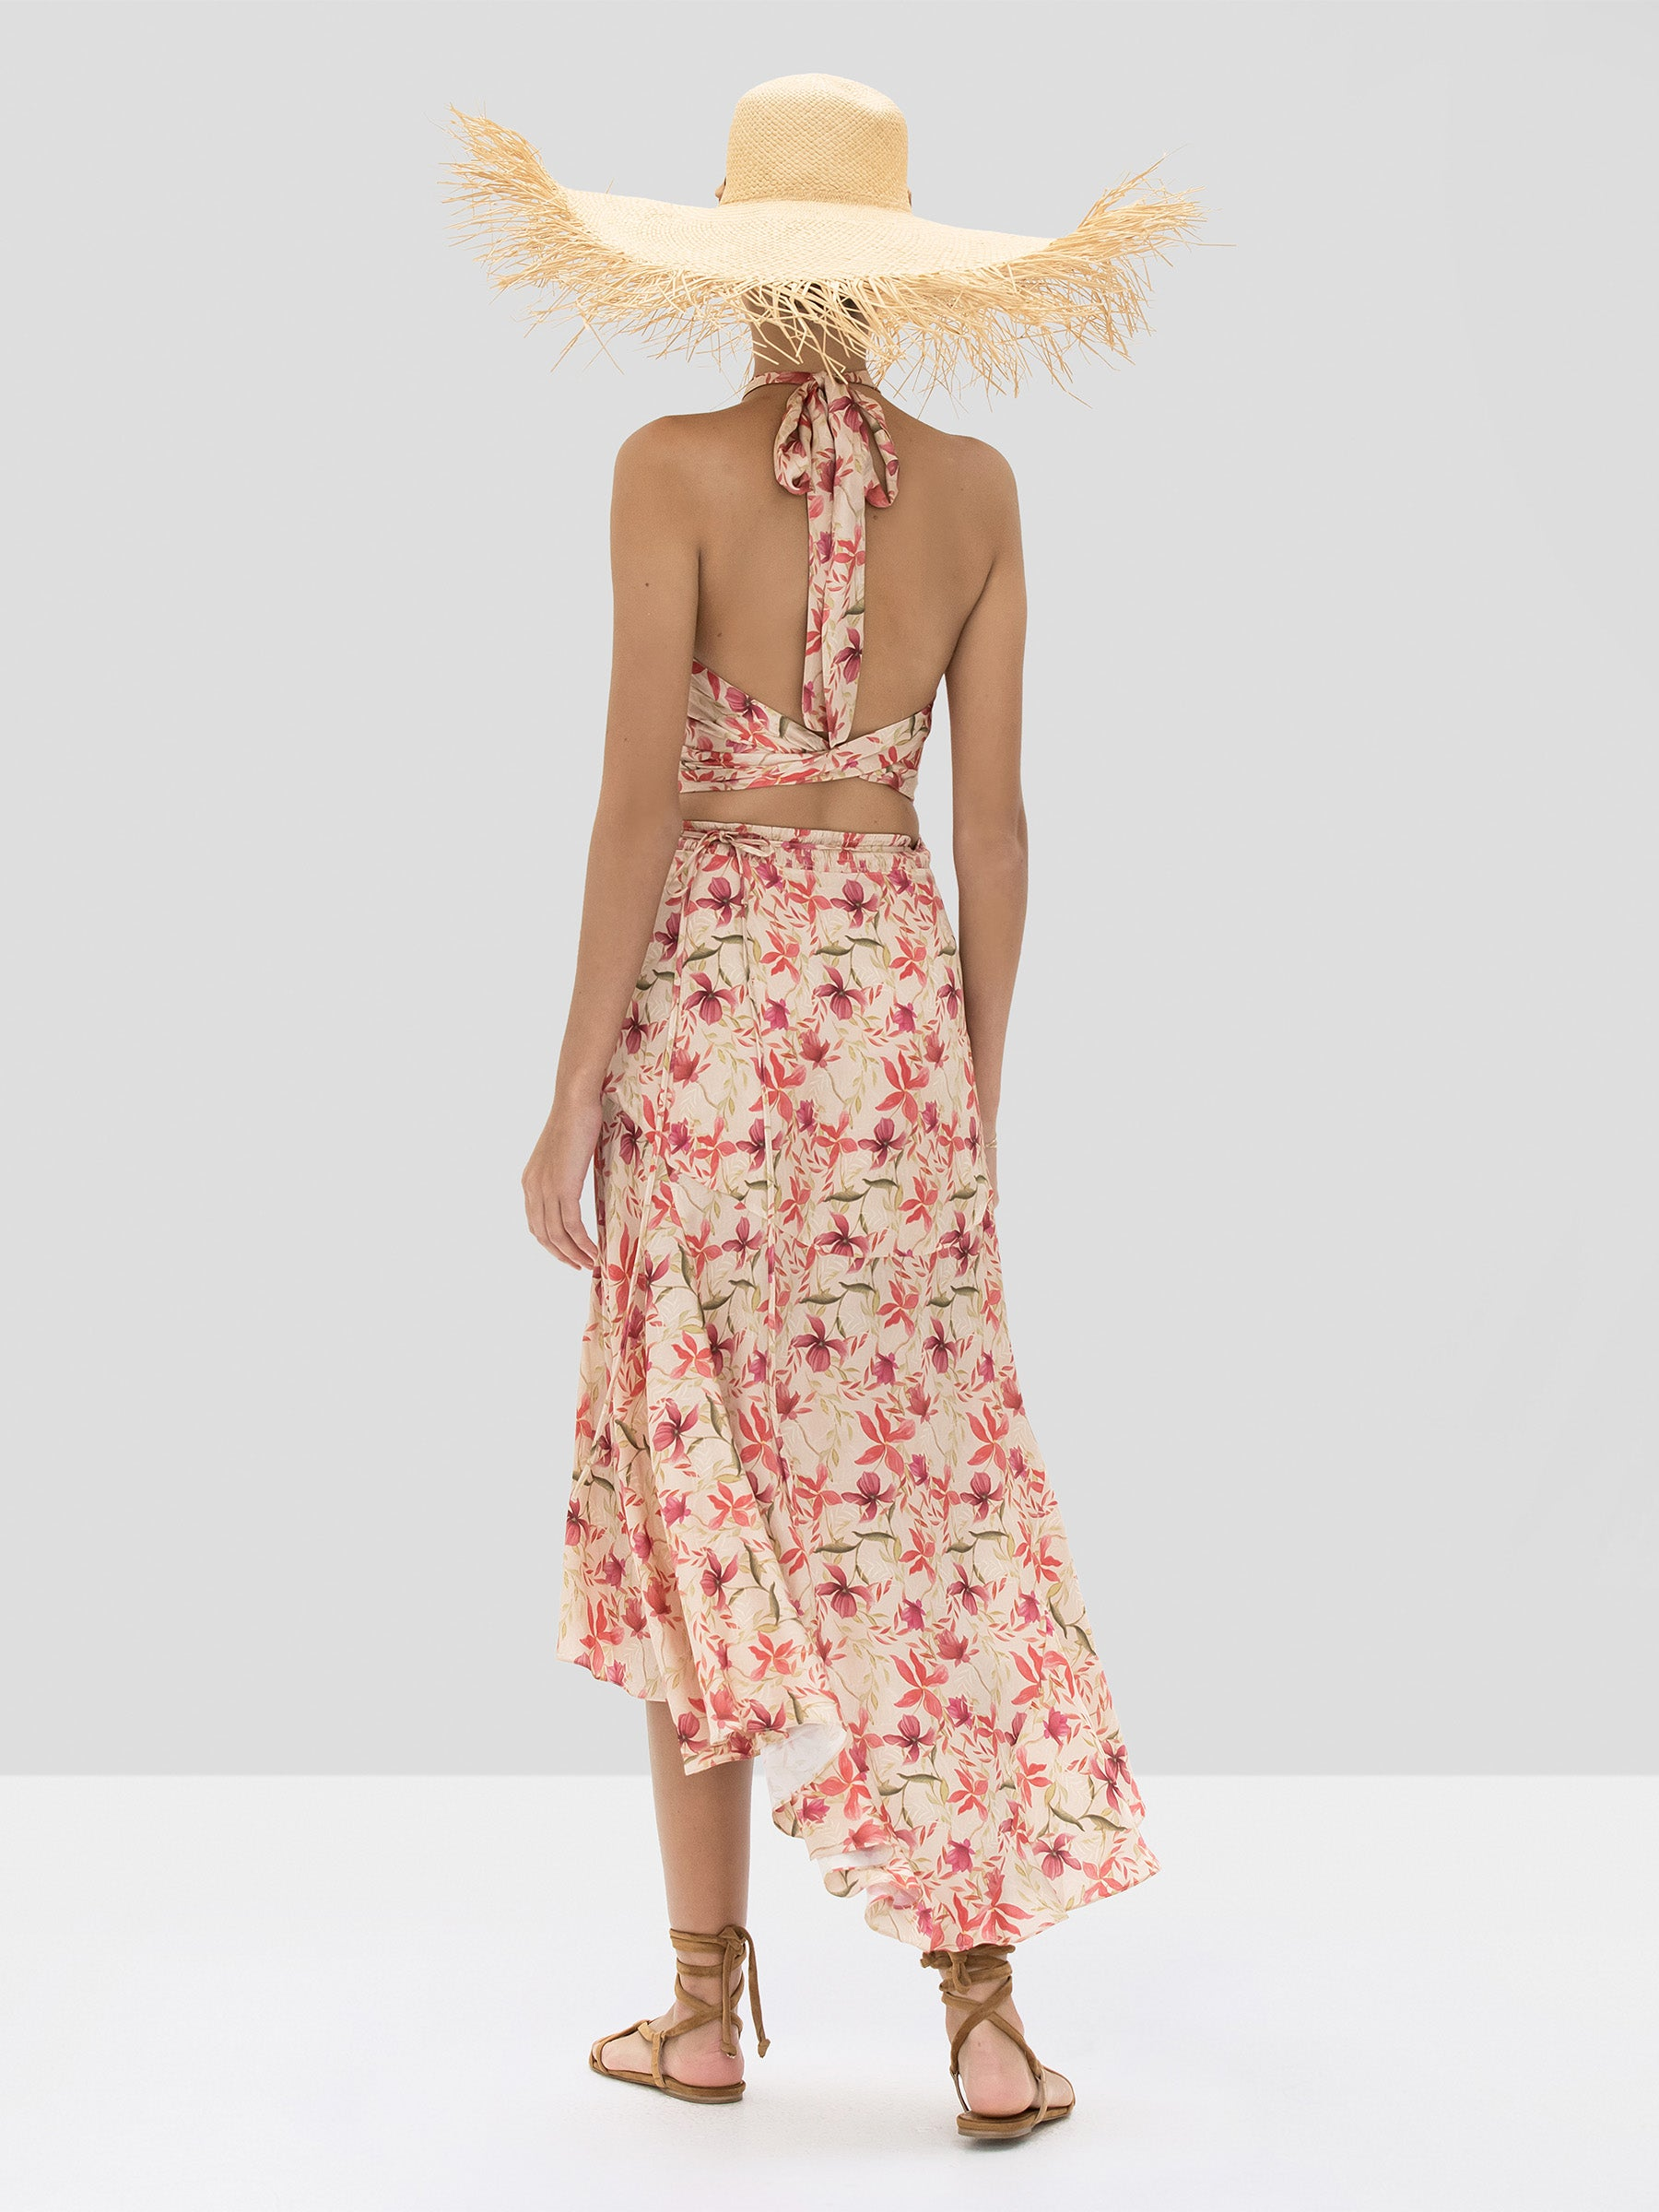 The Bazli Skirt in Wild Orchid Rose from the Spring Summer 2020 - Rear View